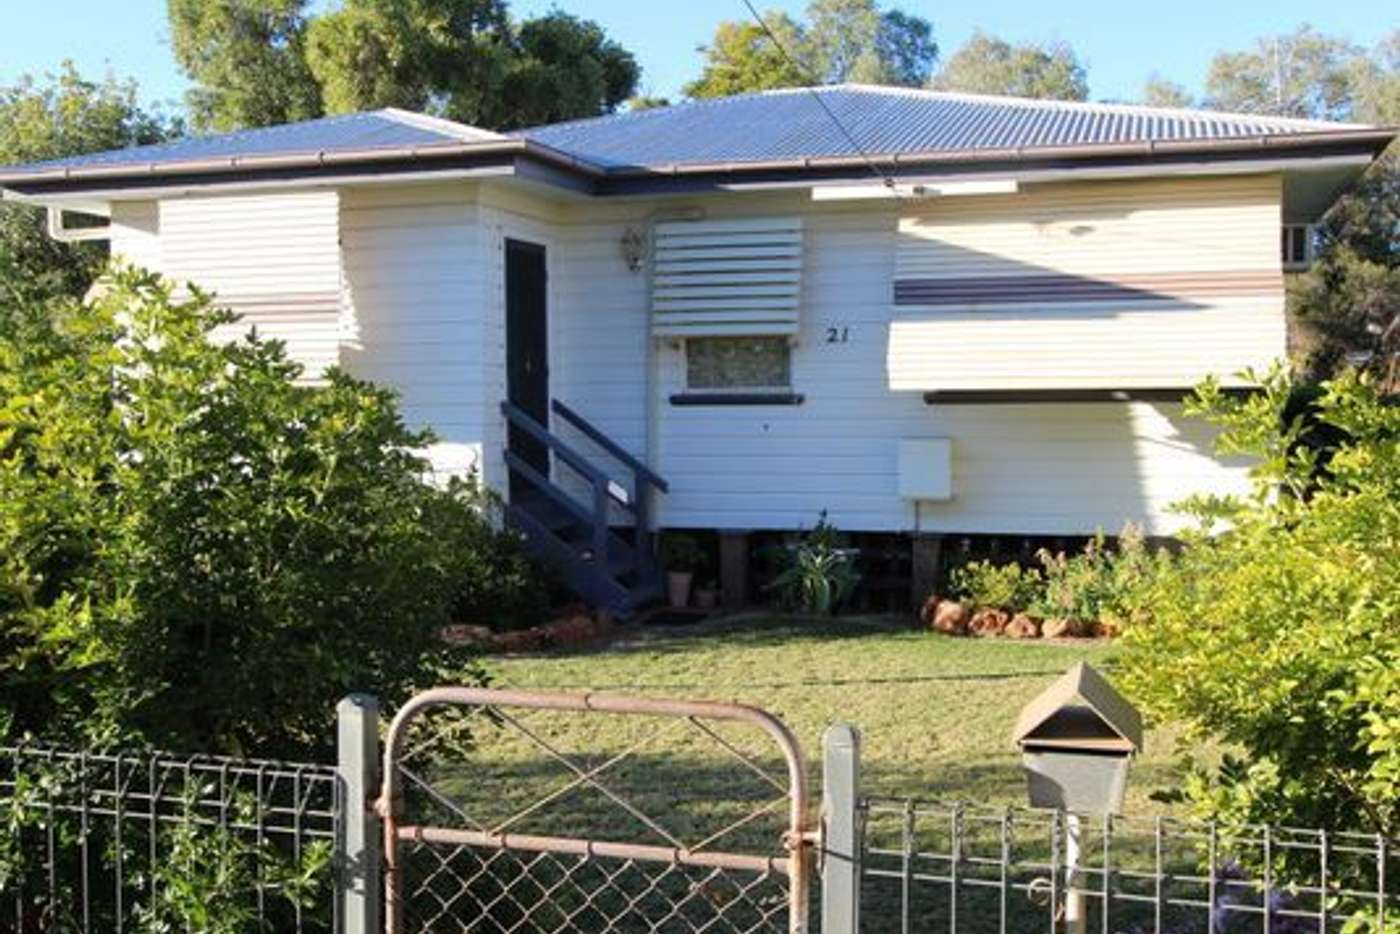 Main view of Homely house listing, 21 Deverell Street, Charleville QLD 4470